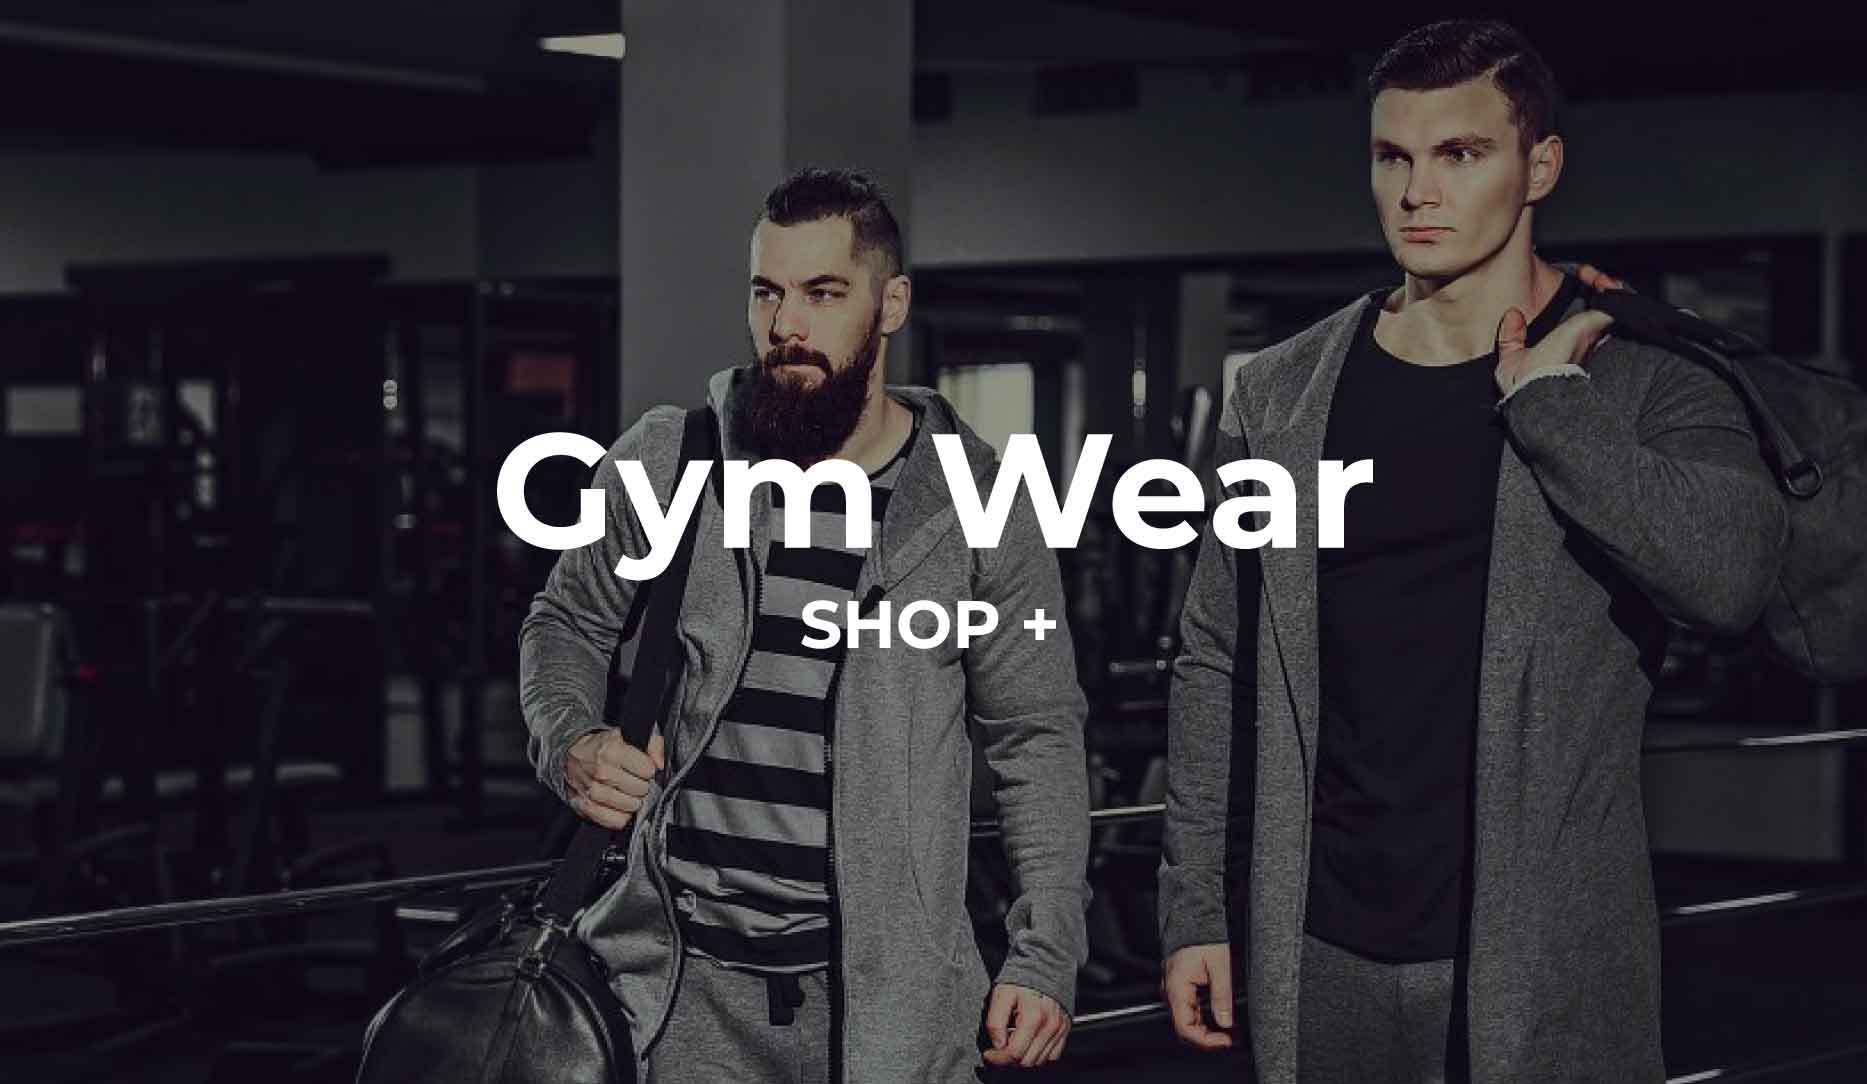 Shop gym wear